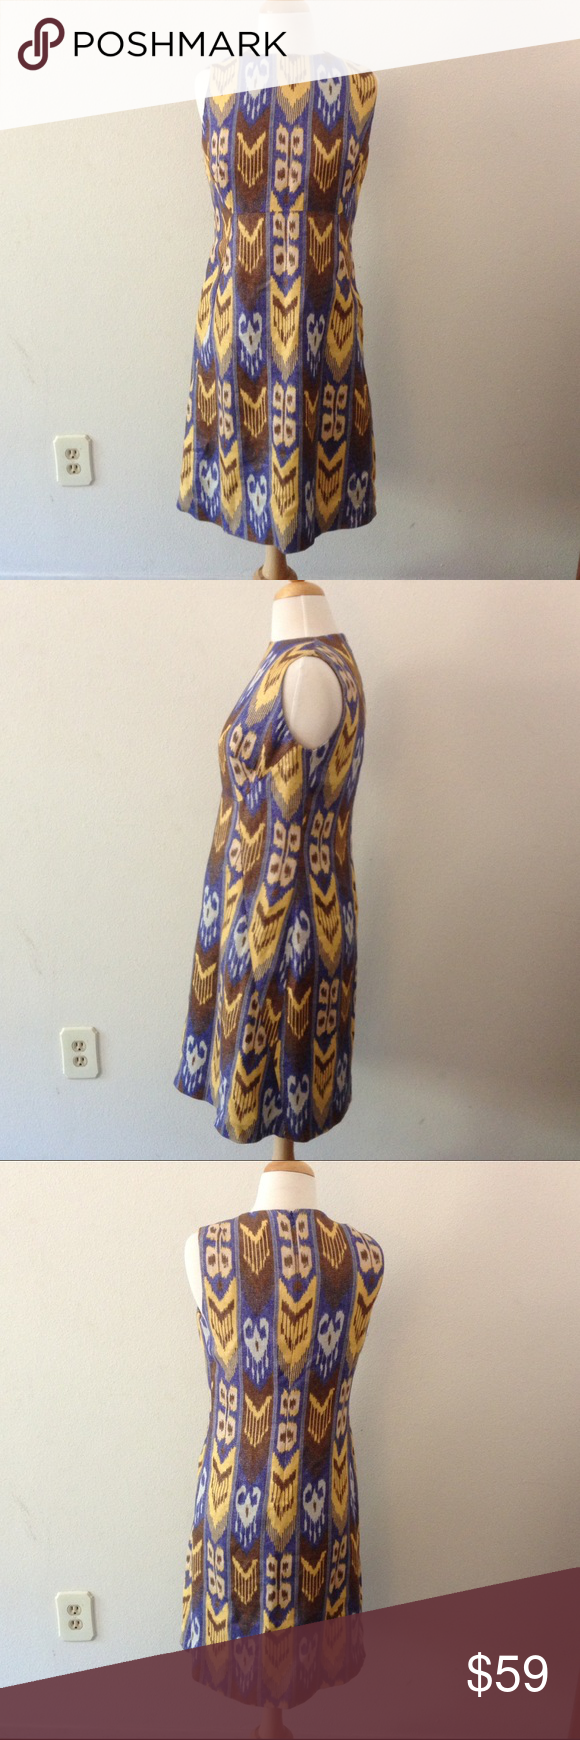 Beautiful Tory Burch Dress with Inside Lining Good conition. Light wrinkling. Size 8 Tory Burch Dresses